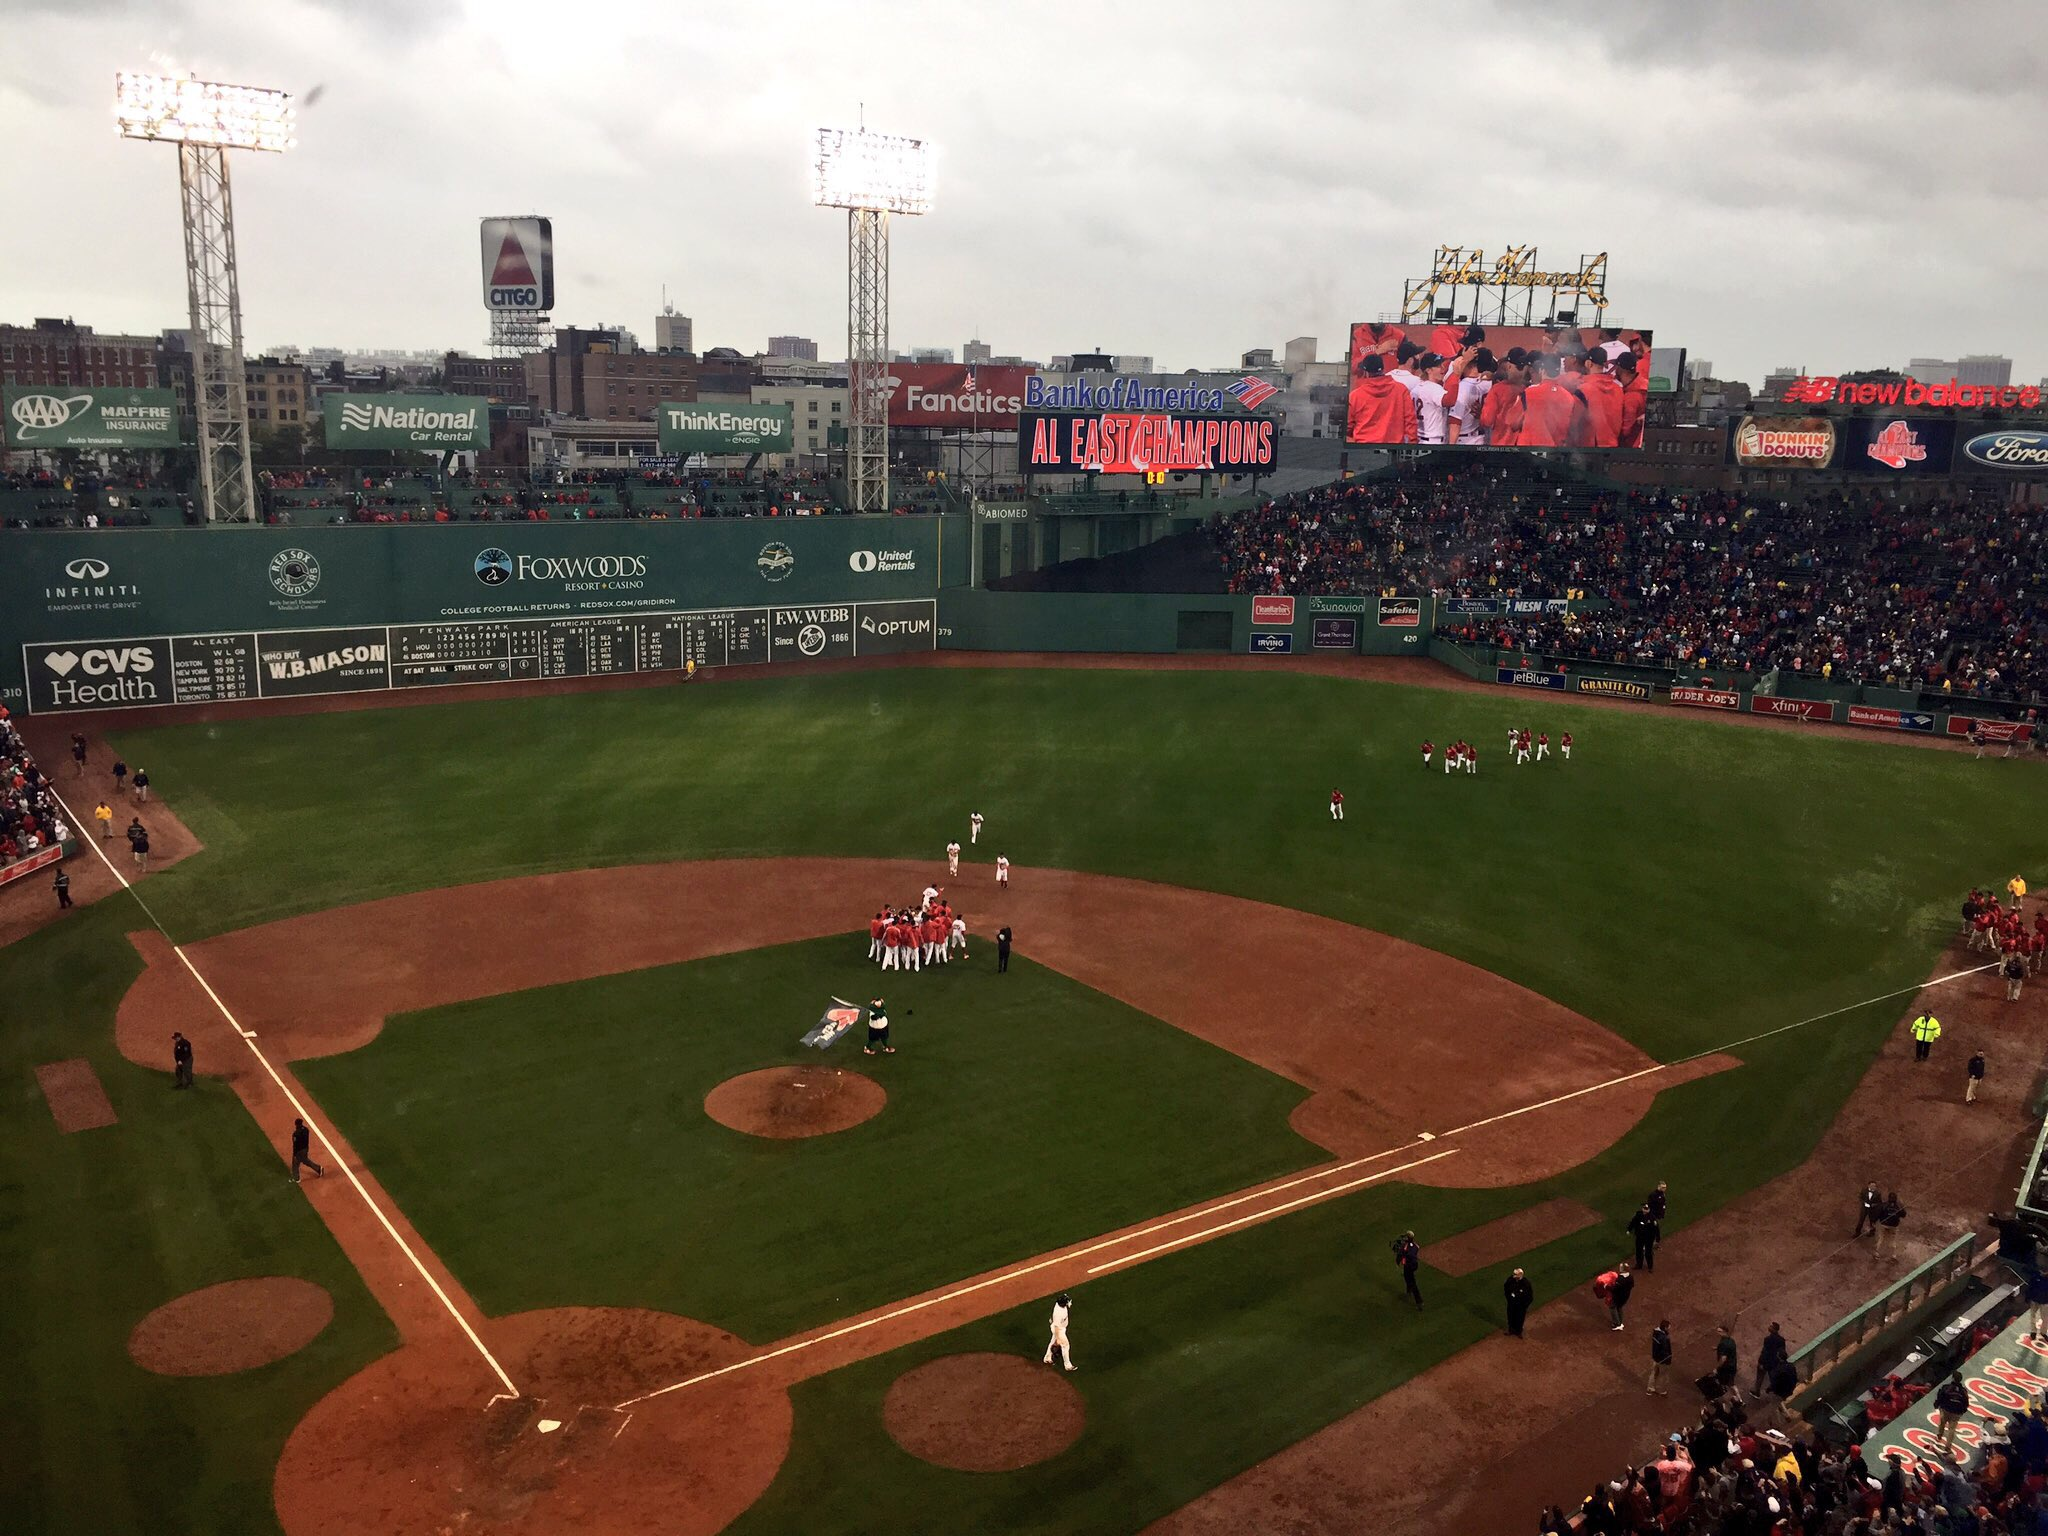 Red Sox are AL East Champs. Sets up for a fun series next week. https://t.co/96caAQKKkJ